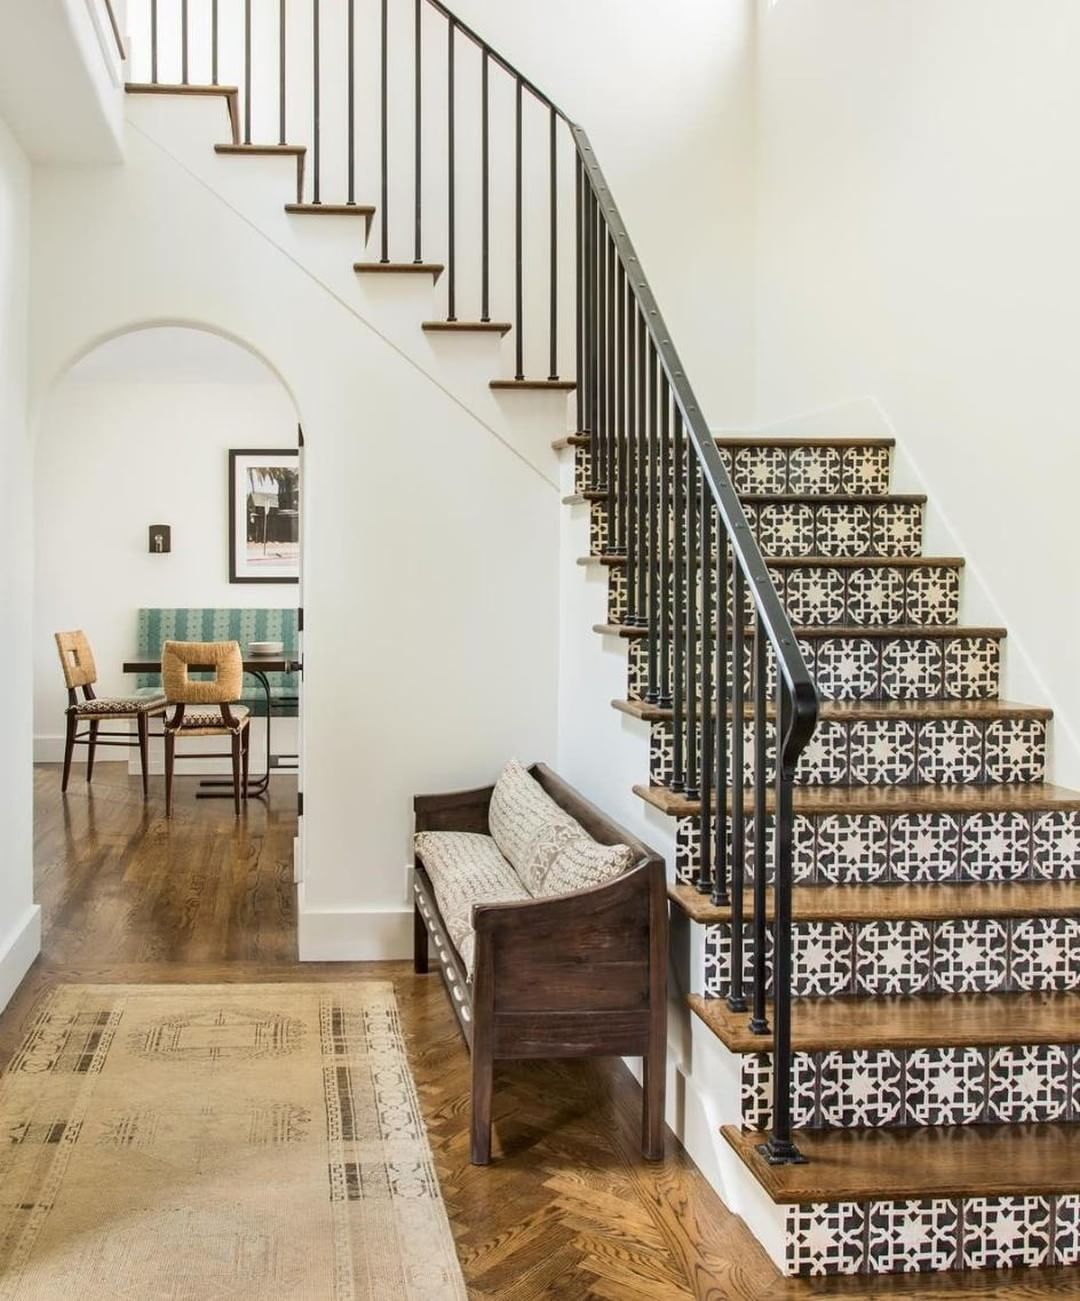 Home interior design staircase pin by beth kluhspies on stairs u railings in   pinterest